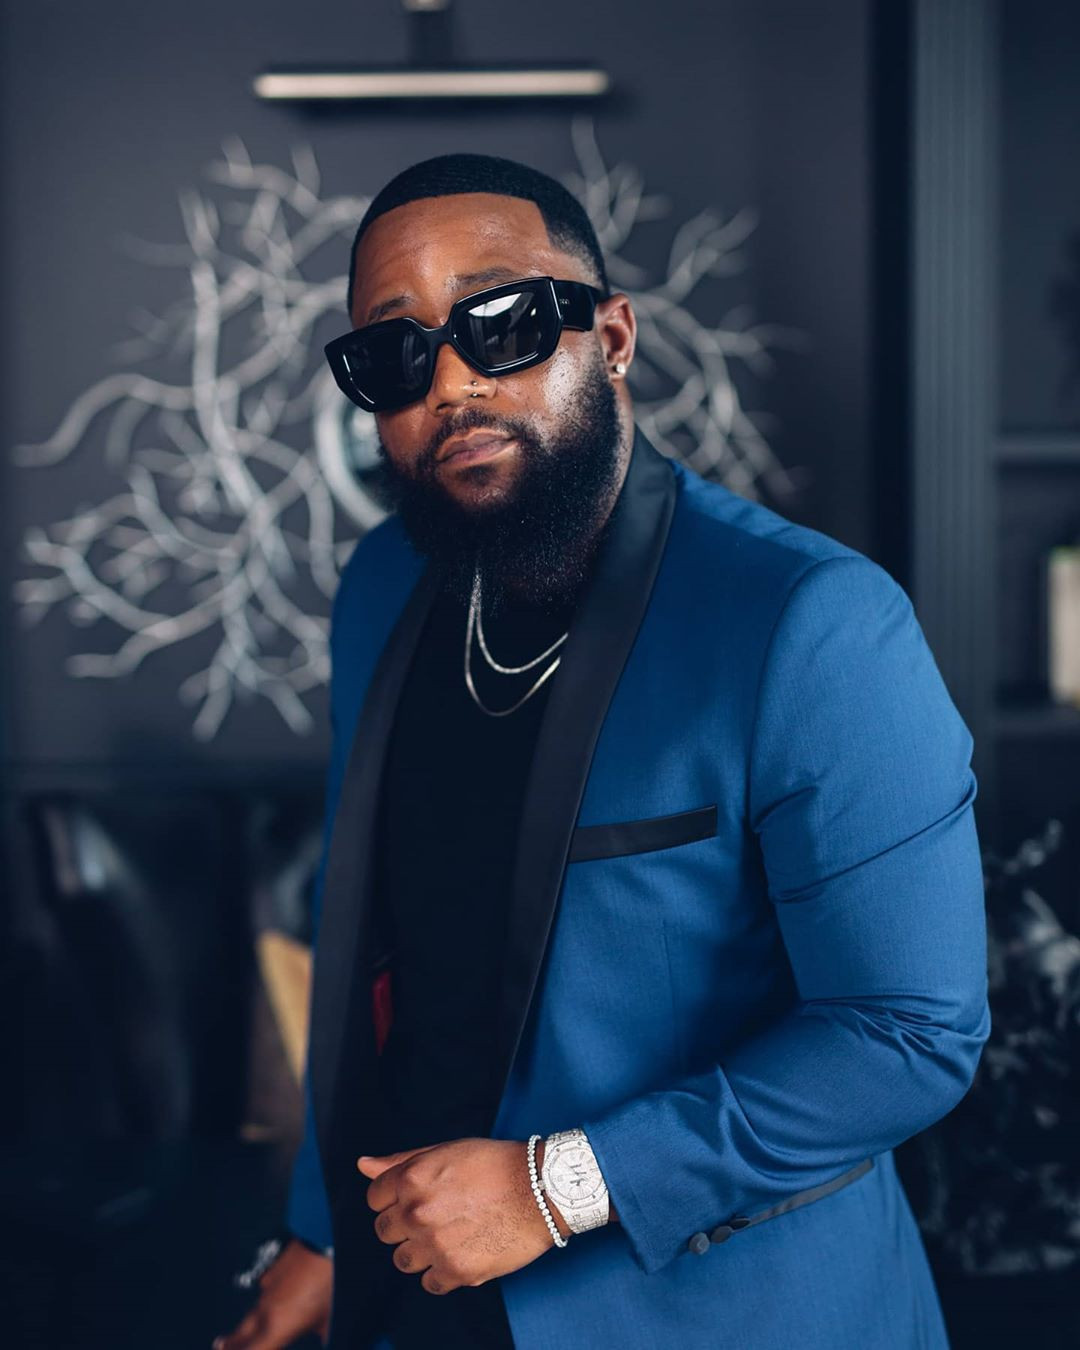 Musicians in South Africa will go hungry if coronavirus lockdown goes on for more than 3 months - Rapper, Cassper Nyovest